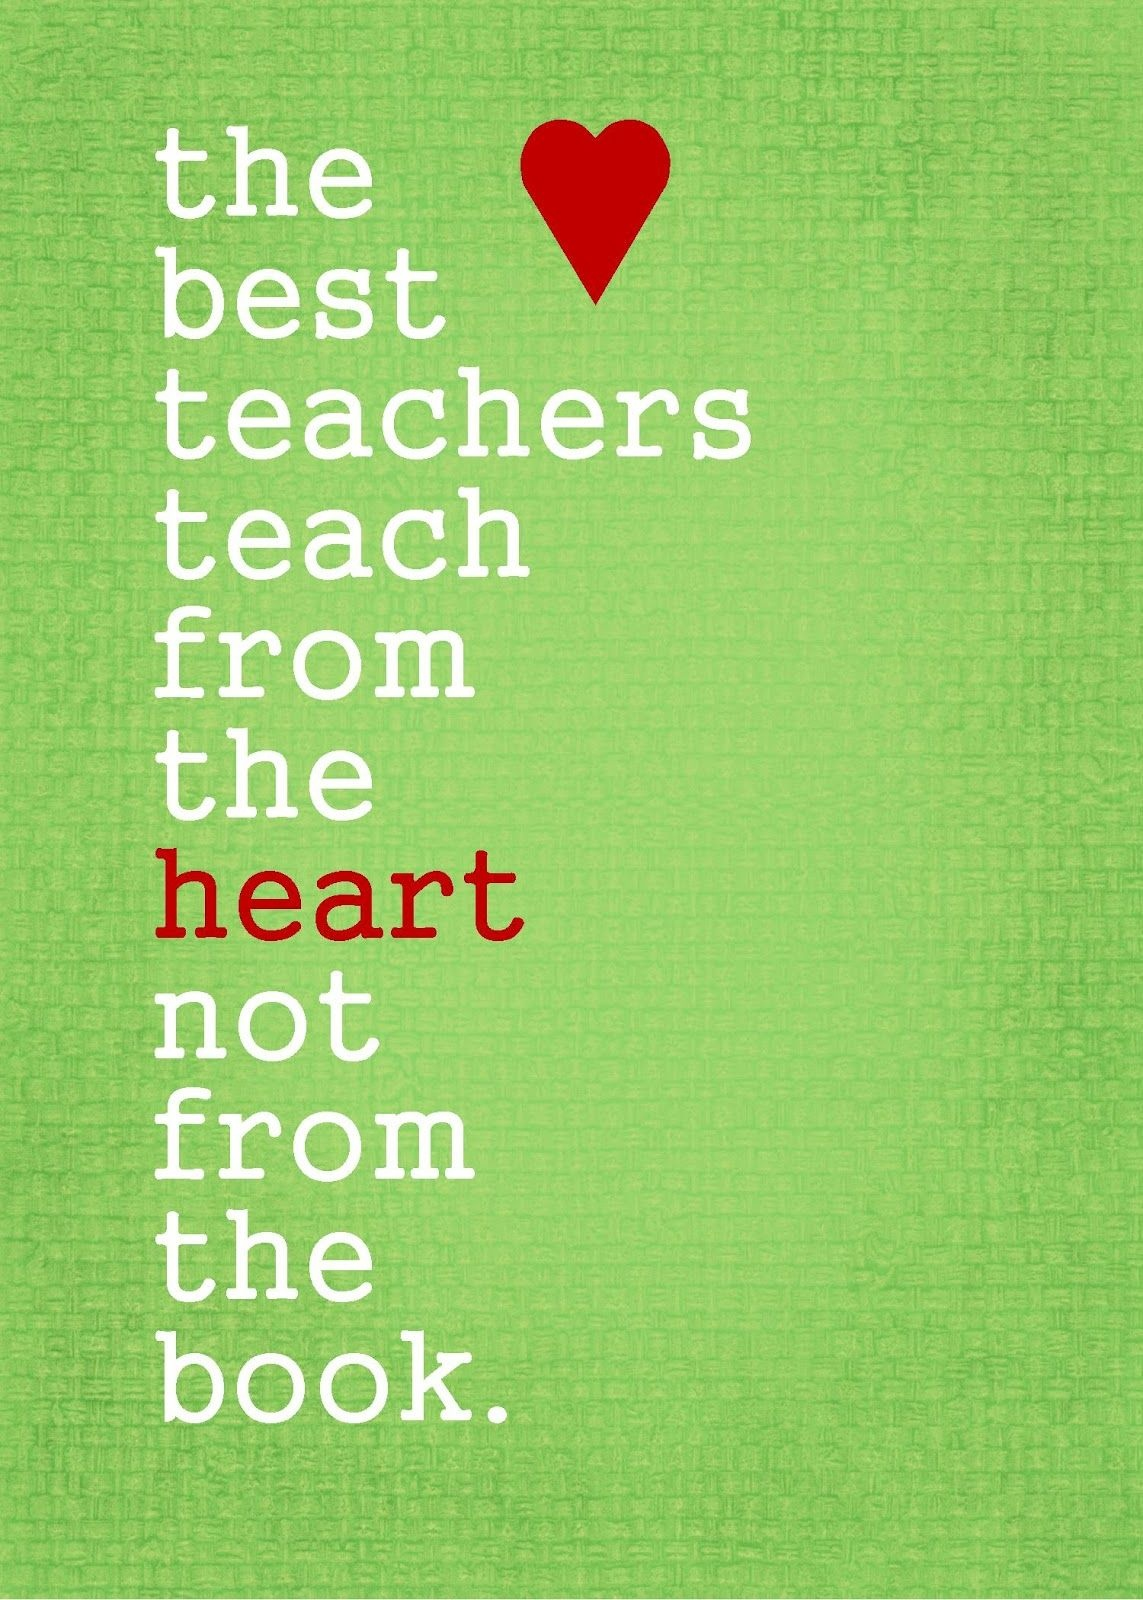 Full Of Great Ideas: Teacher Gifts - Free Printable Quotes And - Free Printable Quotes For Teachers